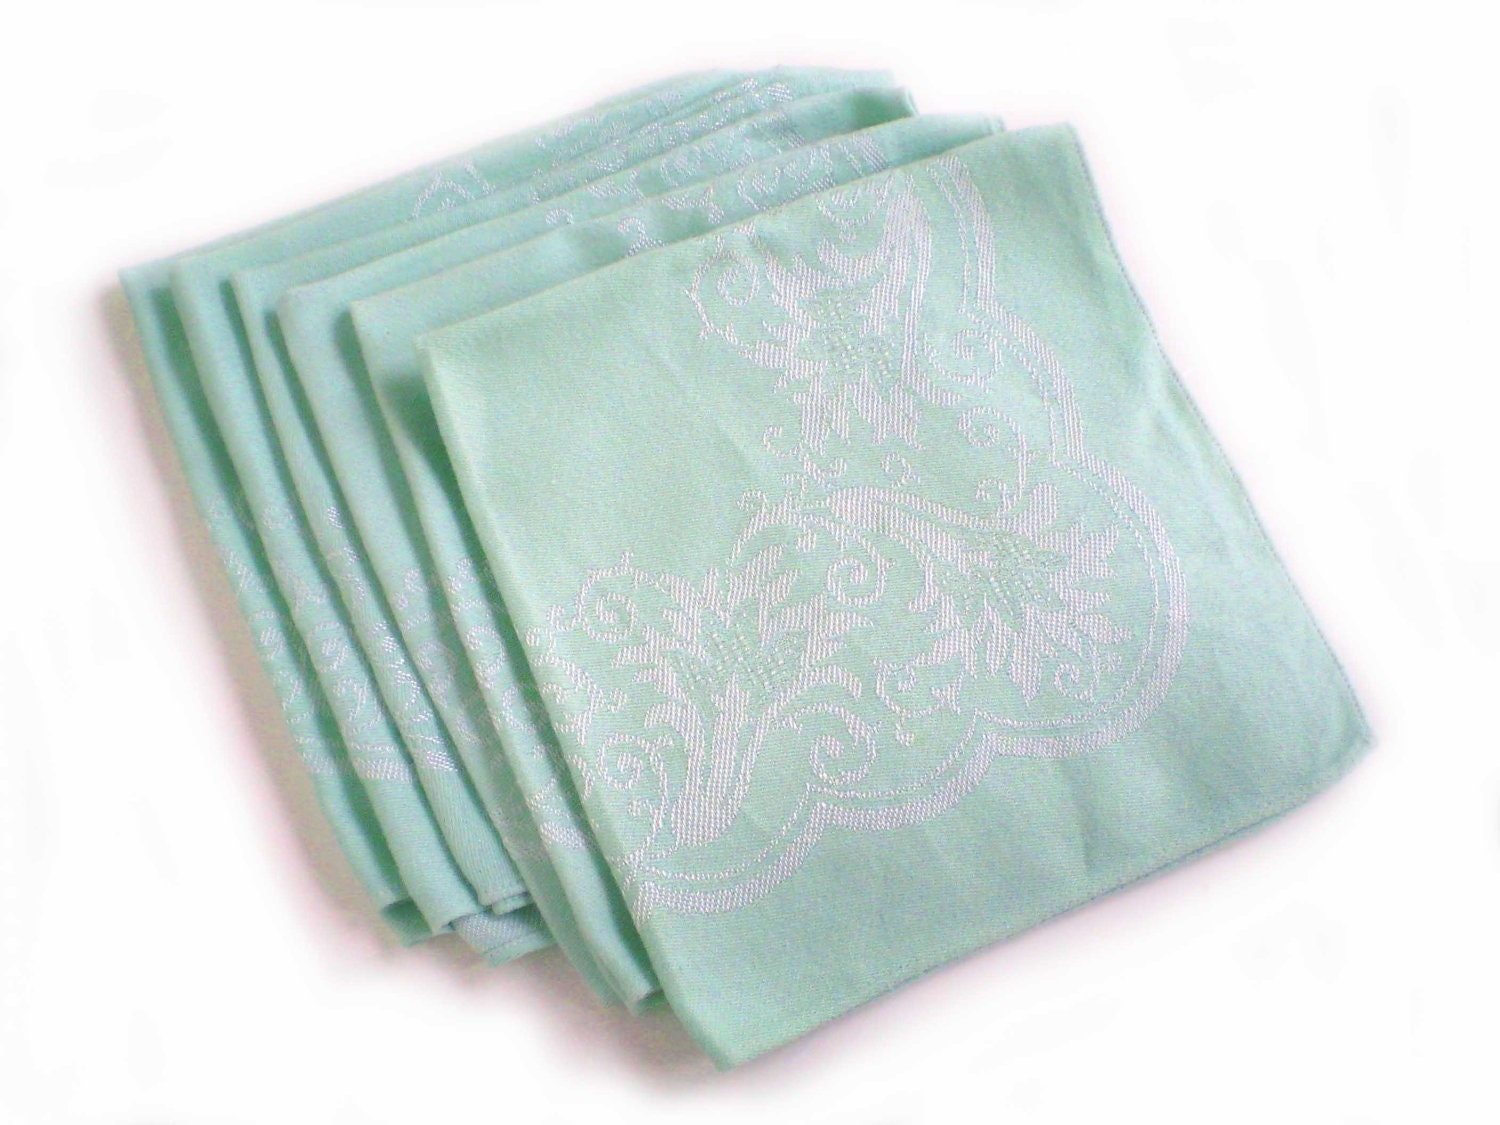 Find Mint Green Napkins at the lowest price guaranteed. Buy today & save plus get free shipping offers on all party tableware at techclux.gq!